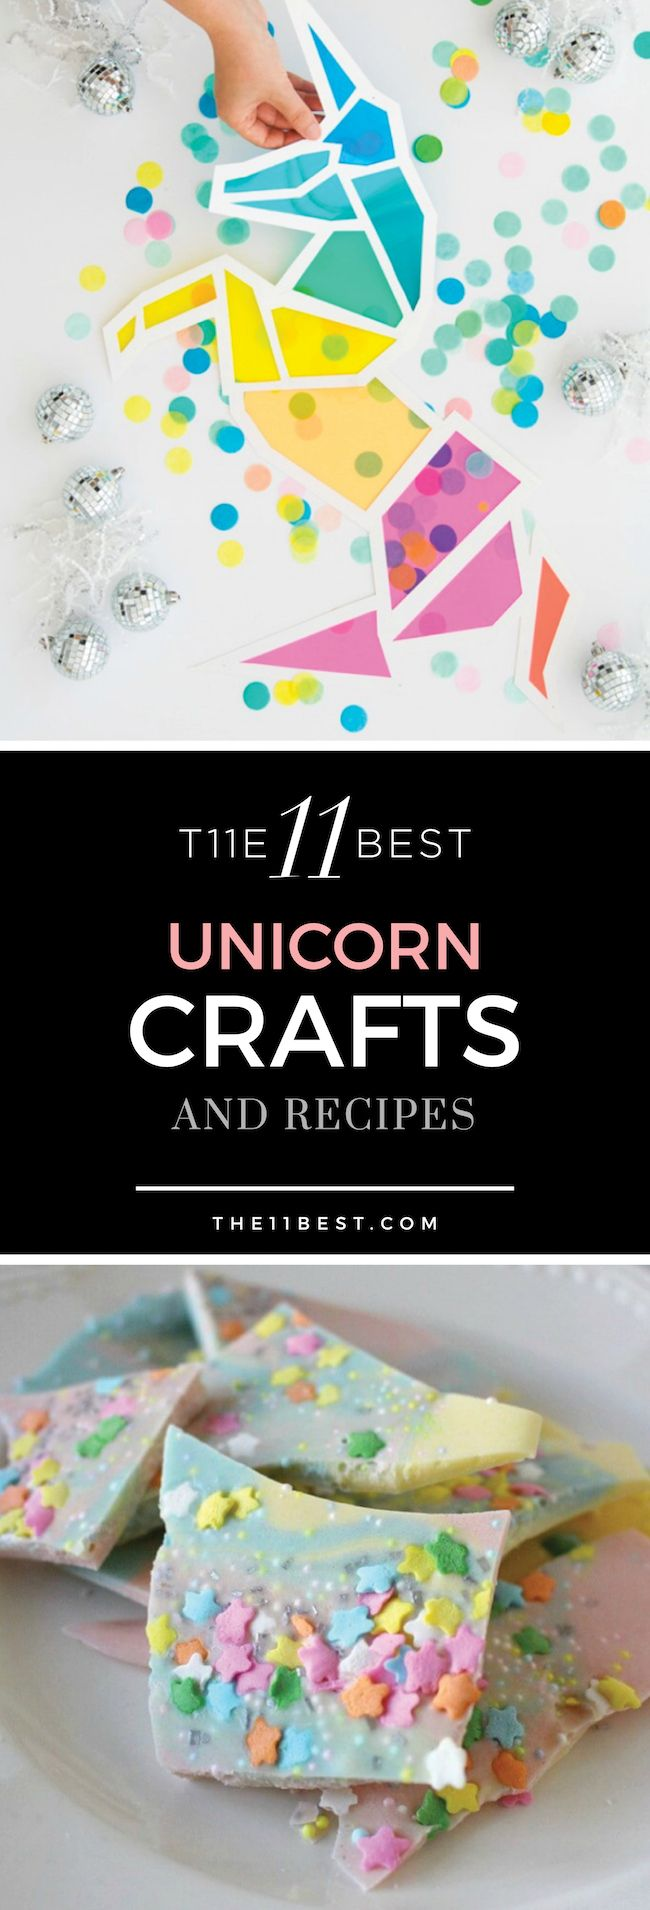 Unicorn party. Unicorn crafts and recipes for all ages to enjoy!